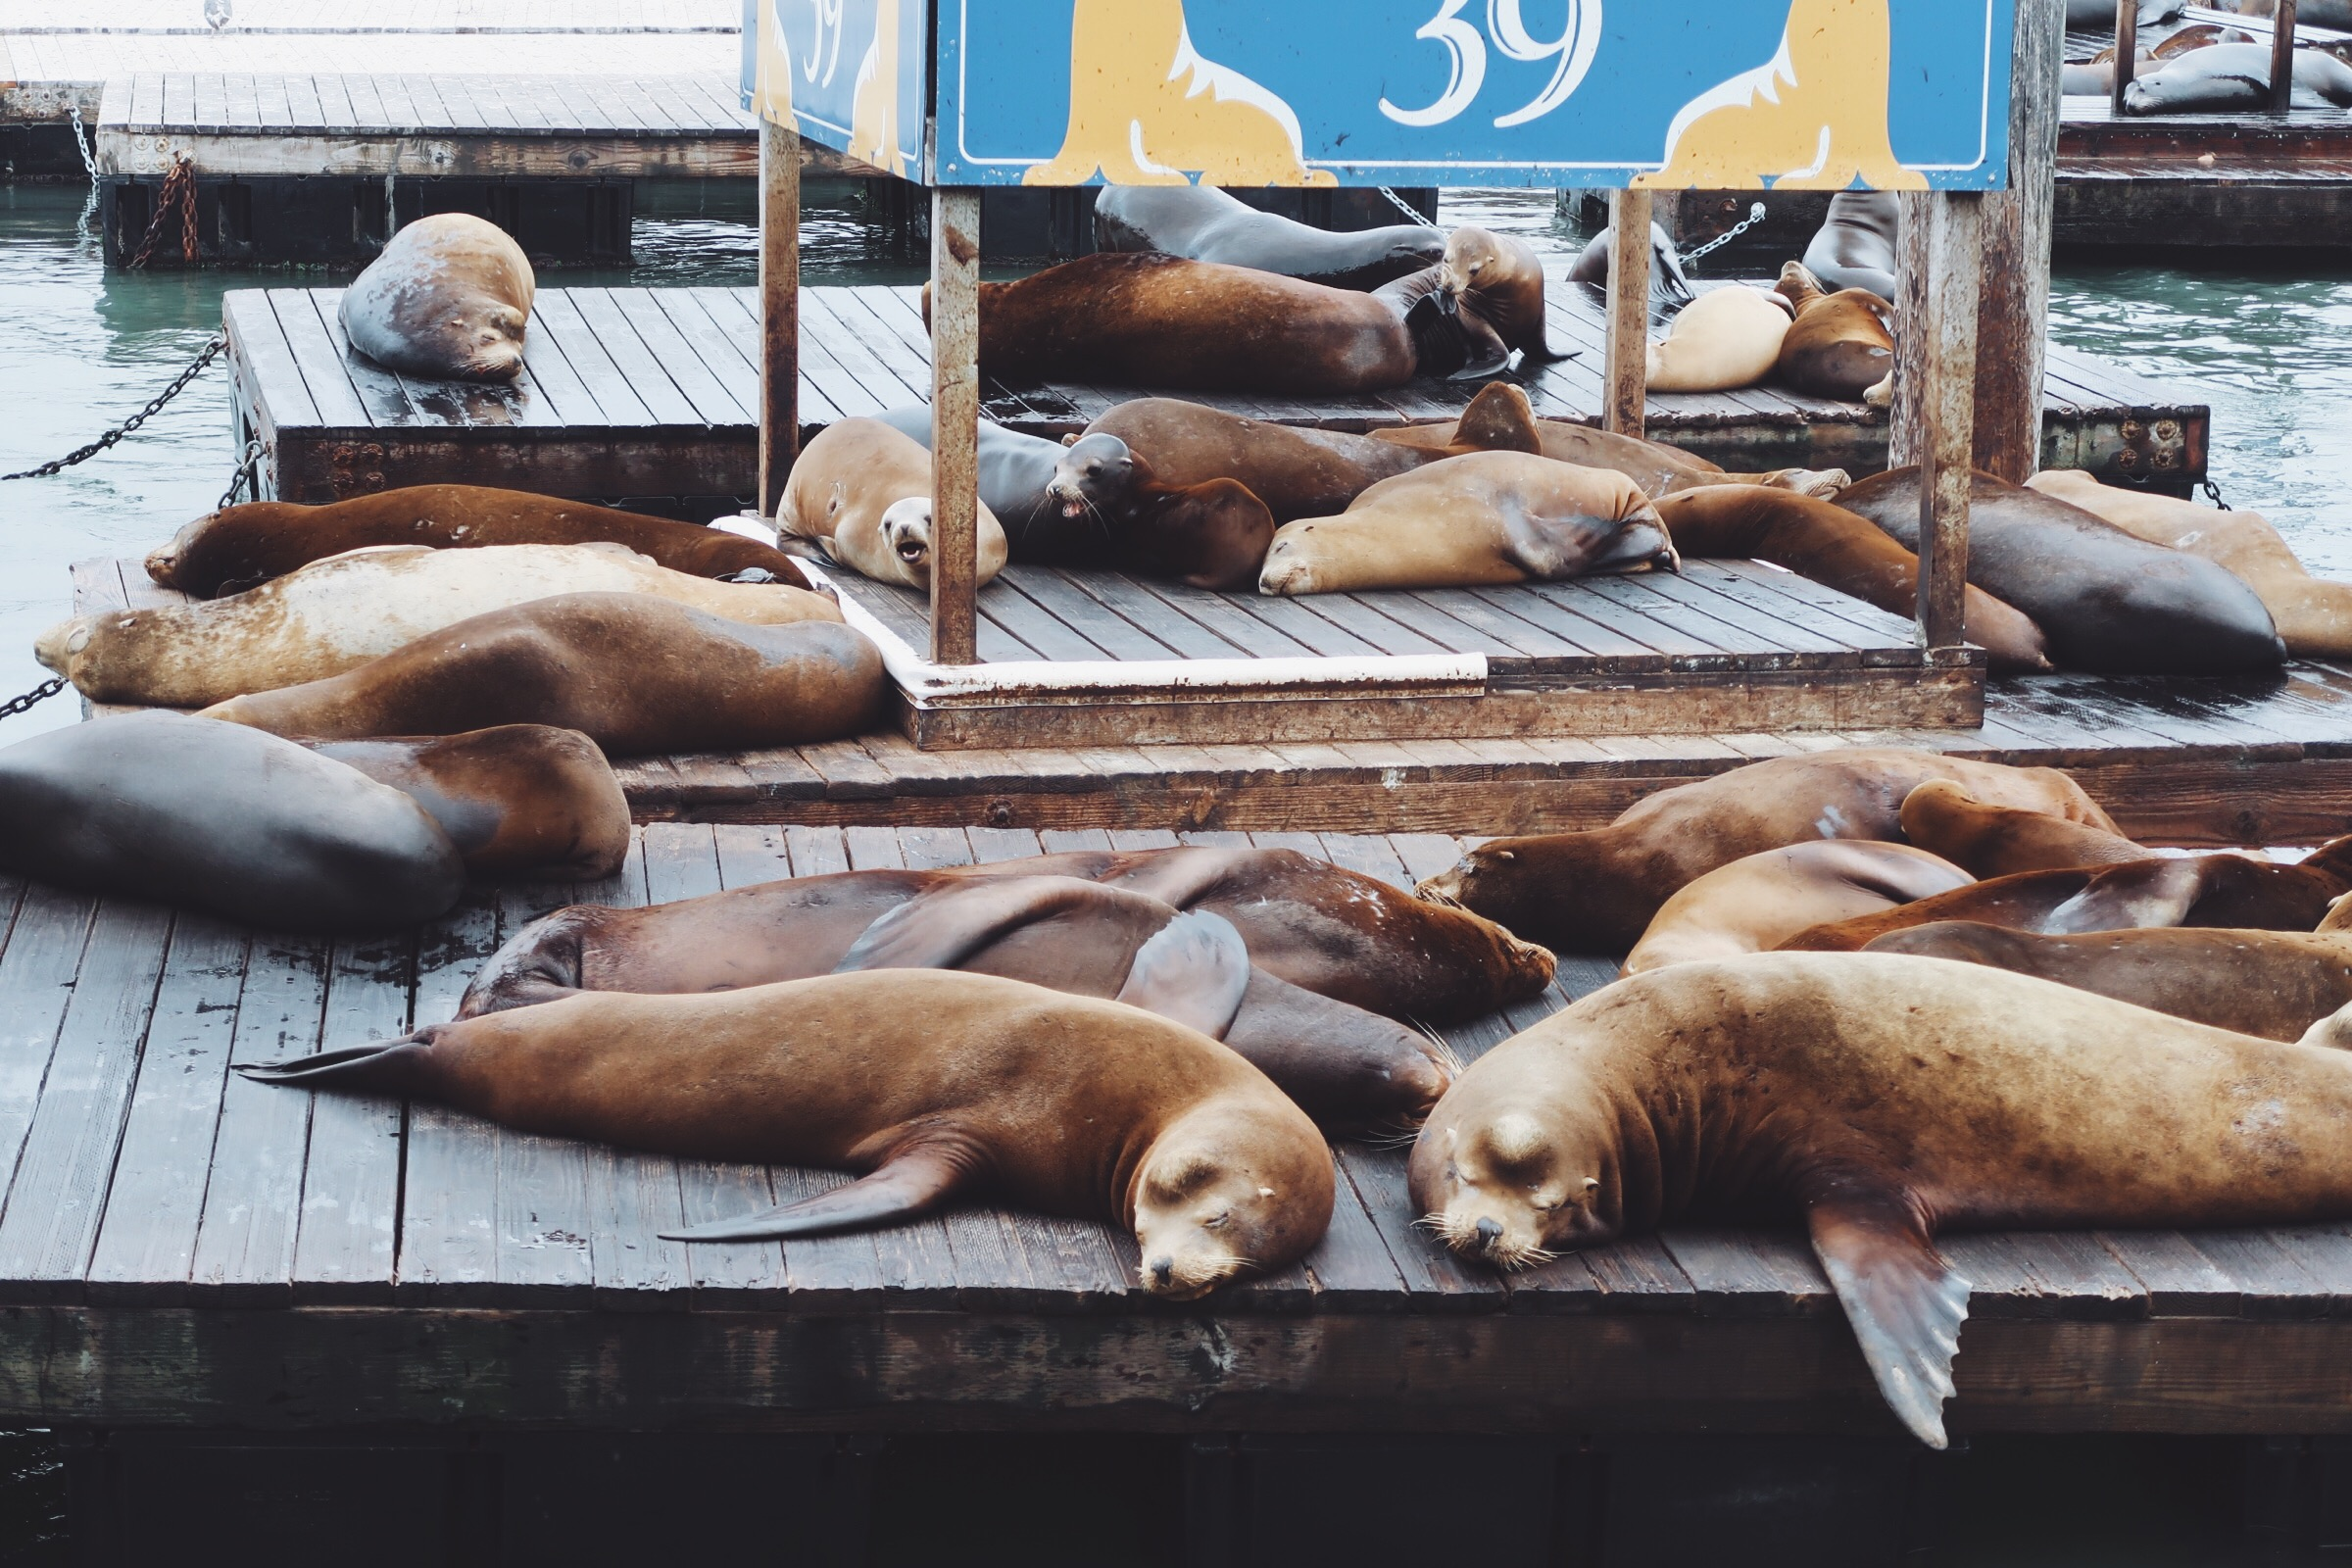 The cute sleepy sea lions of Pier 39